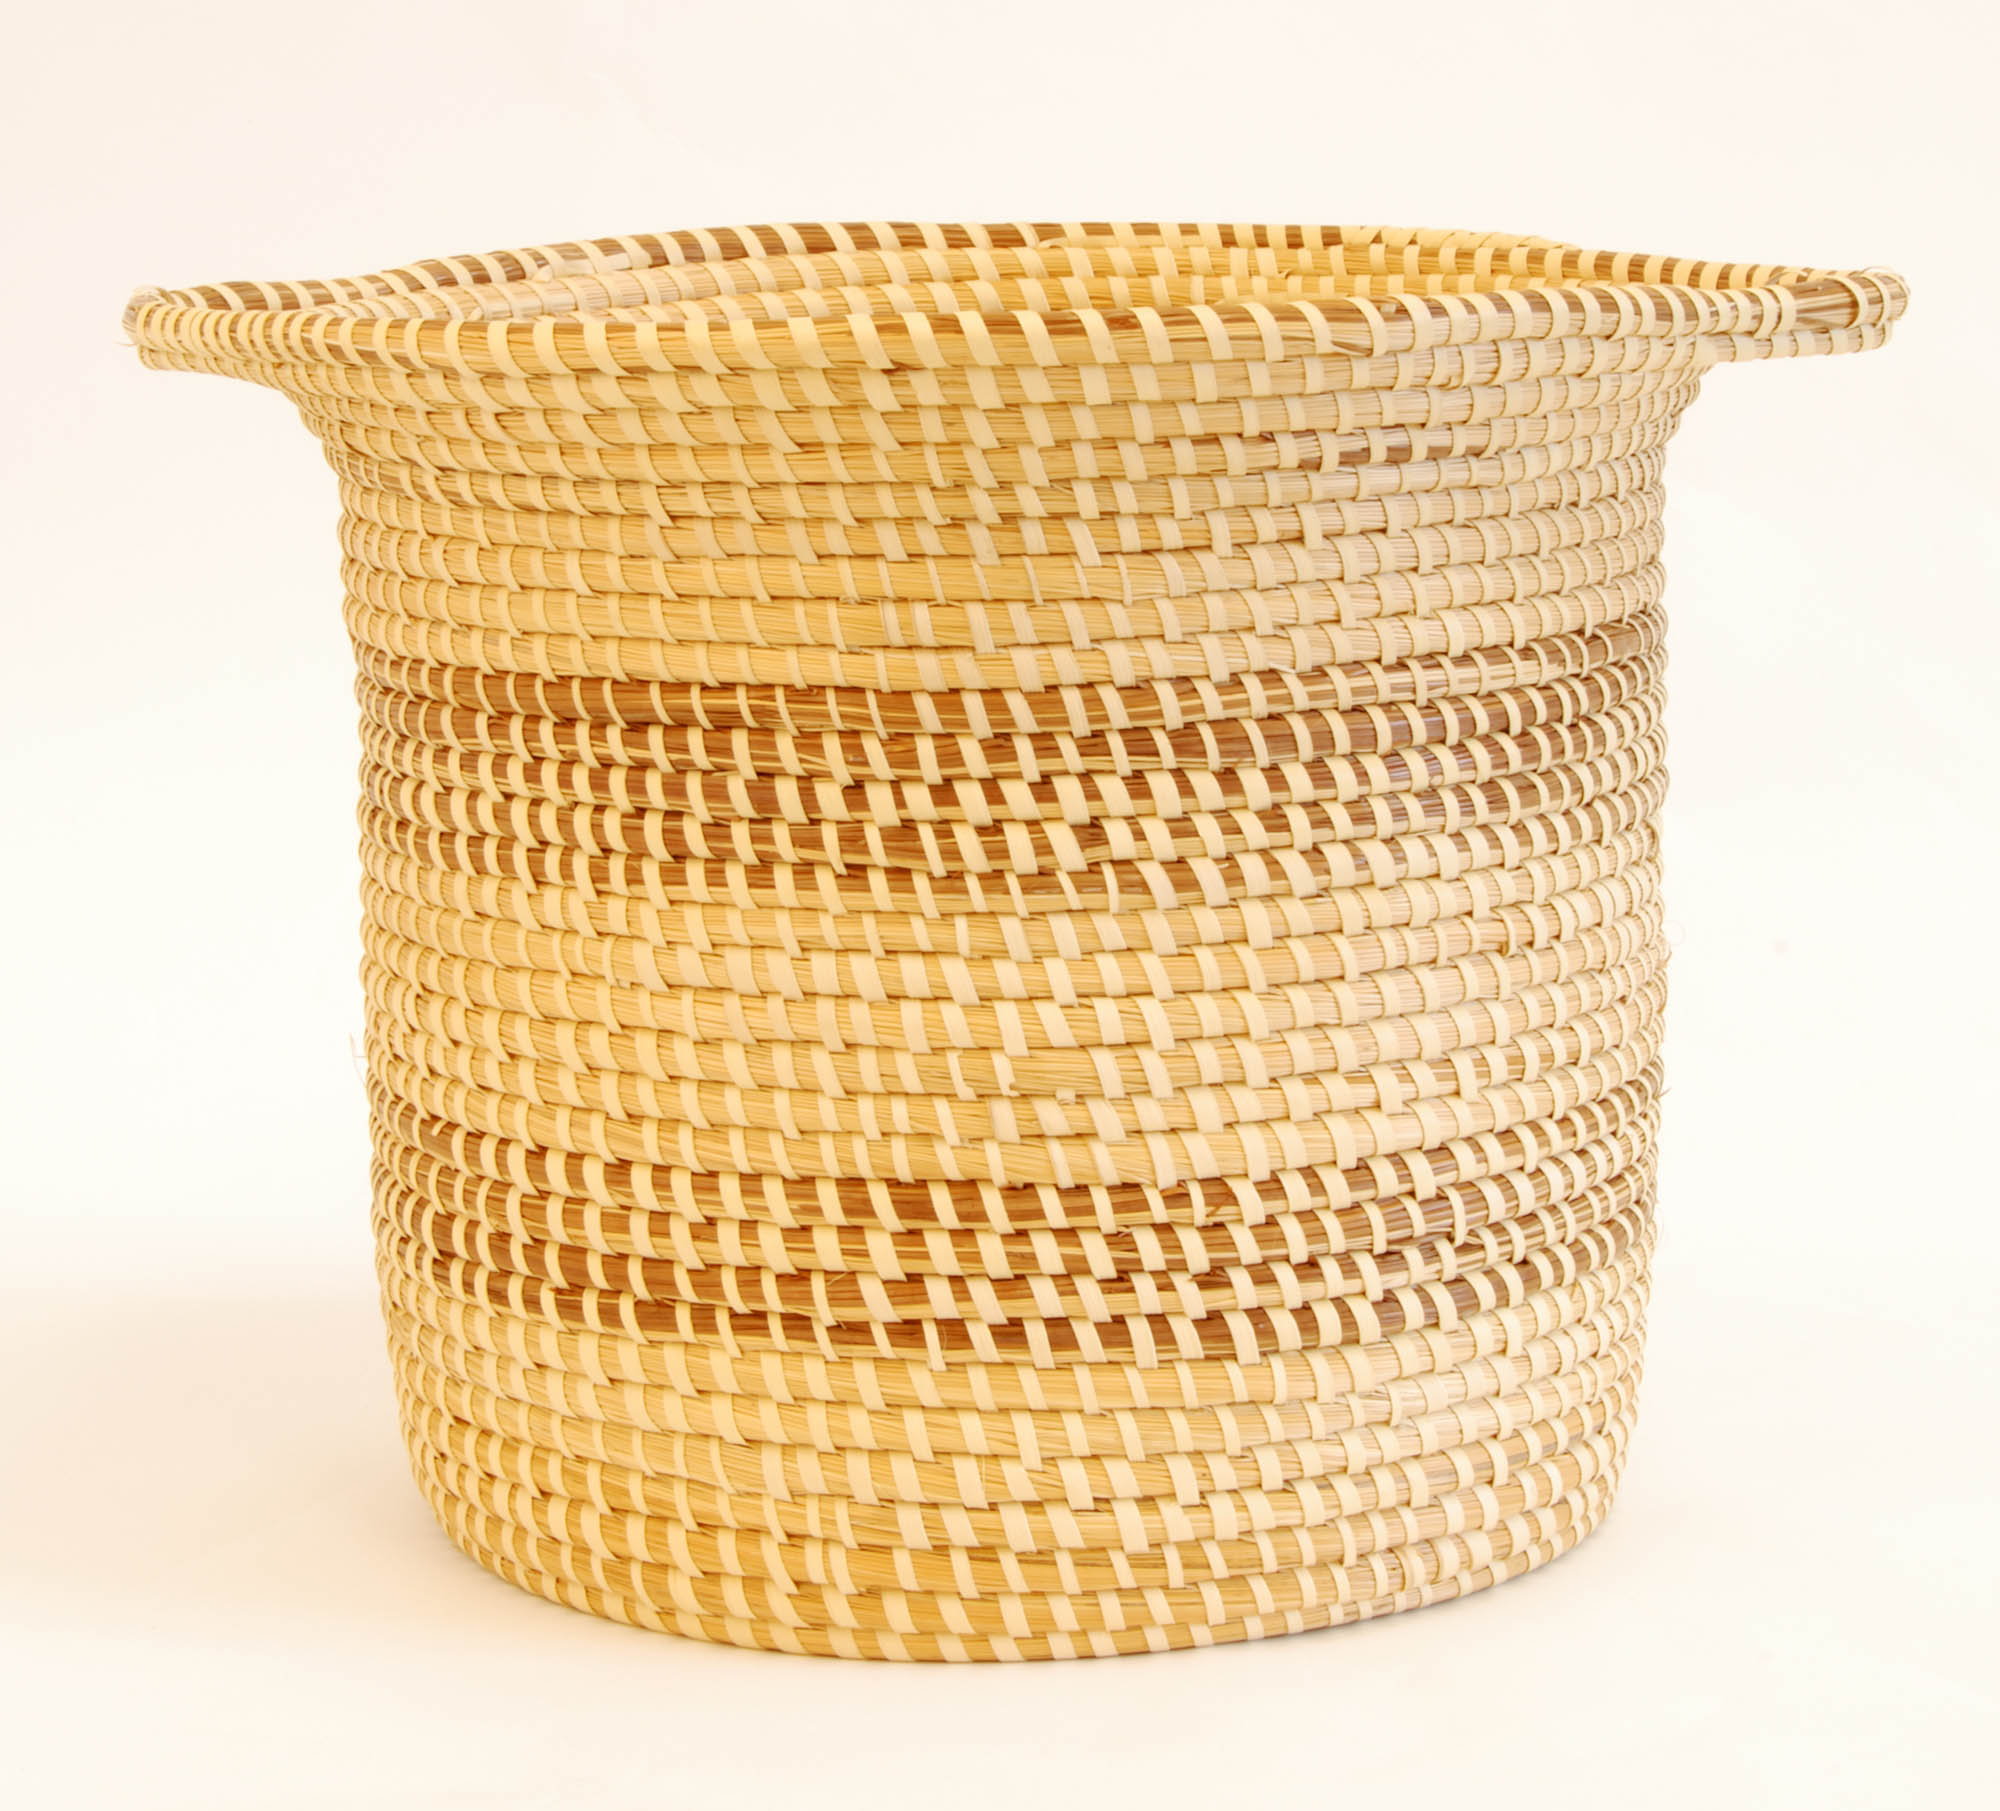 Sweetgrass waste basket with handles